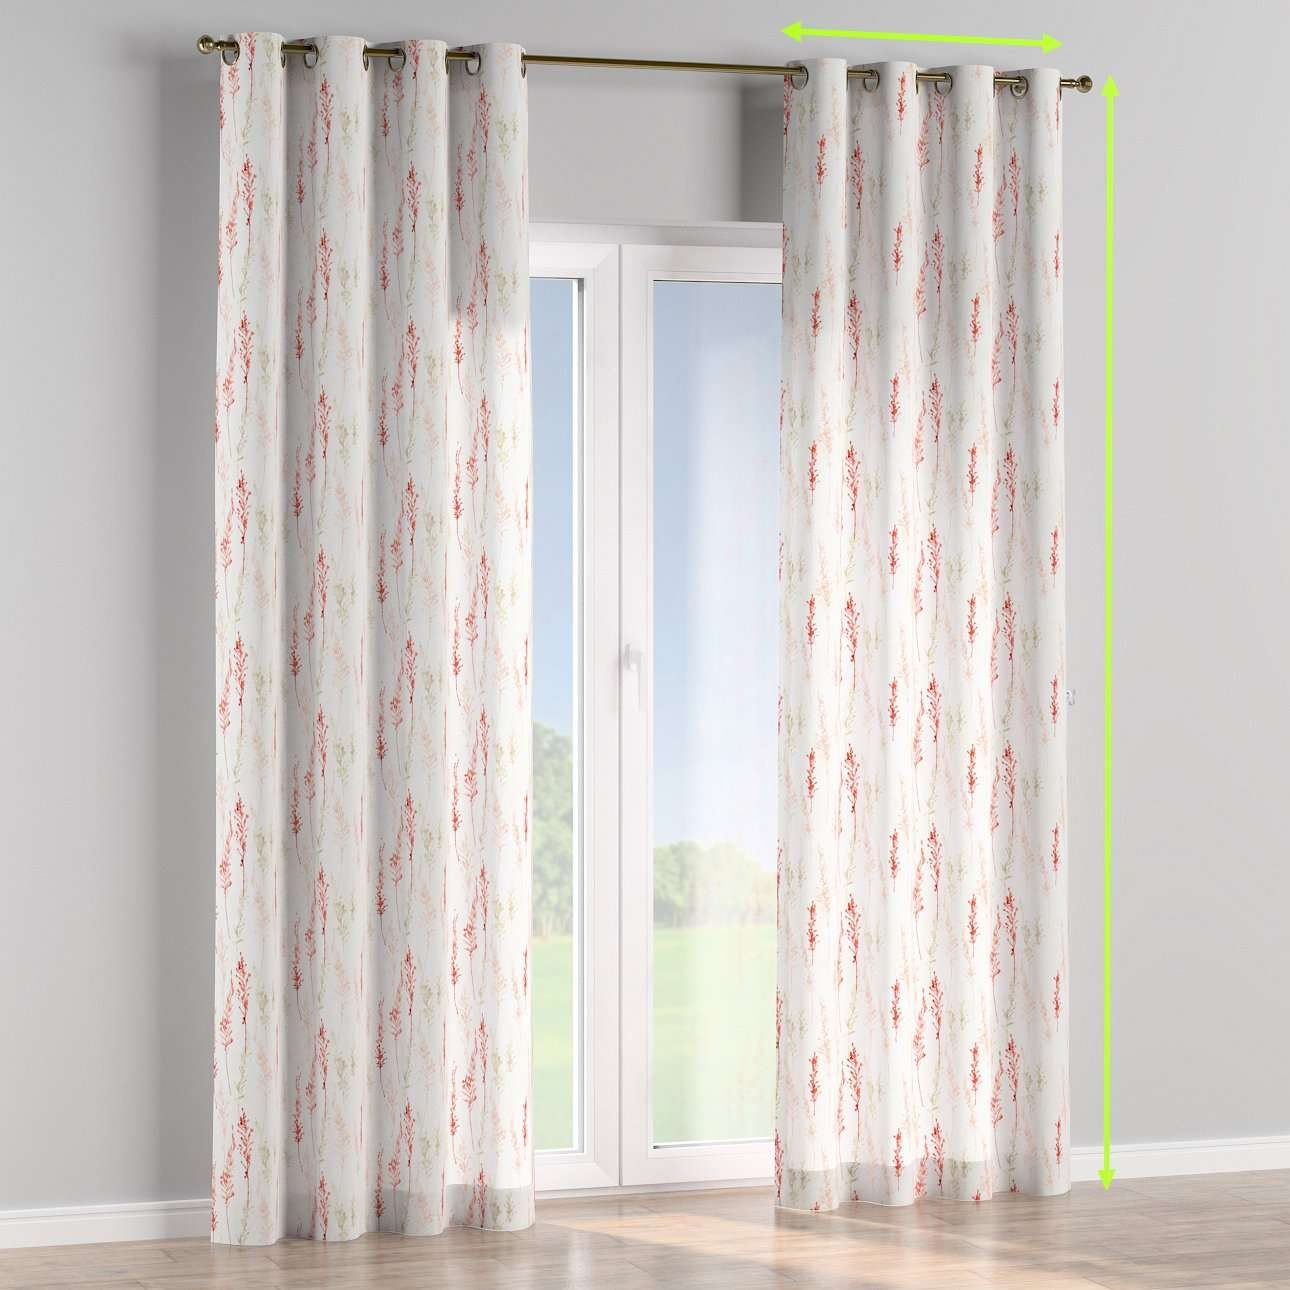 Eyelet lined curtains in collection Acapulco, fabric: 141-37